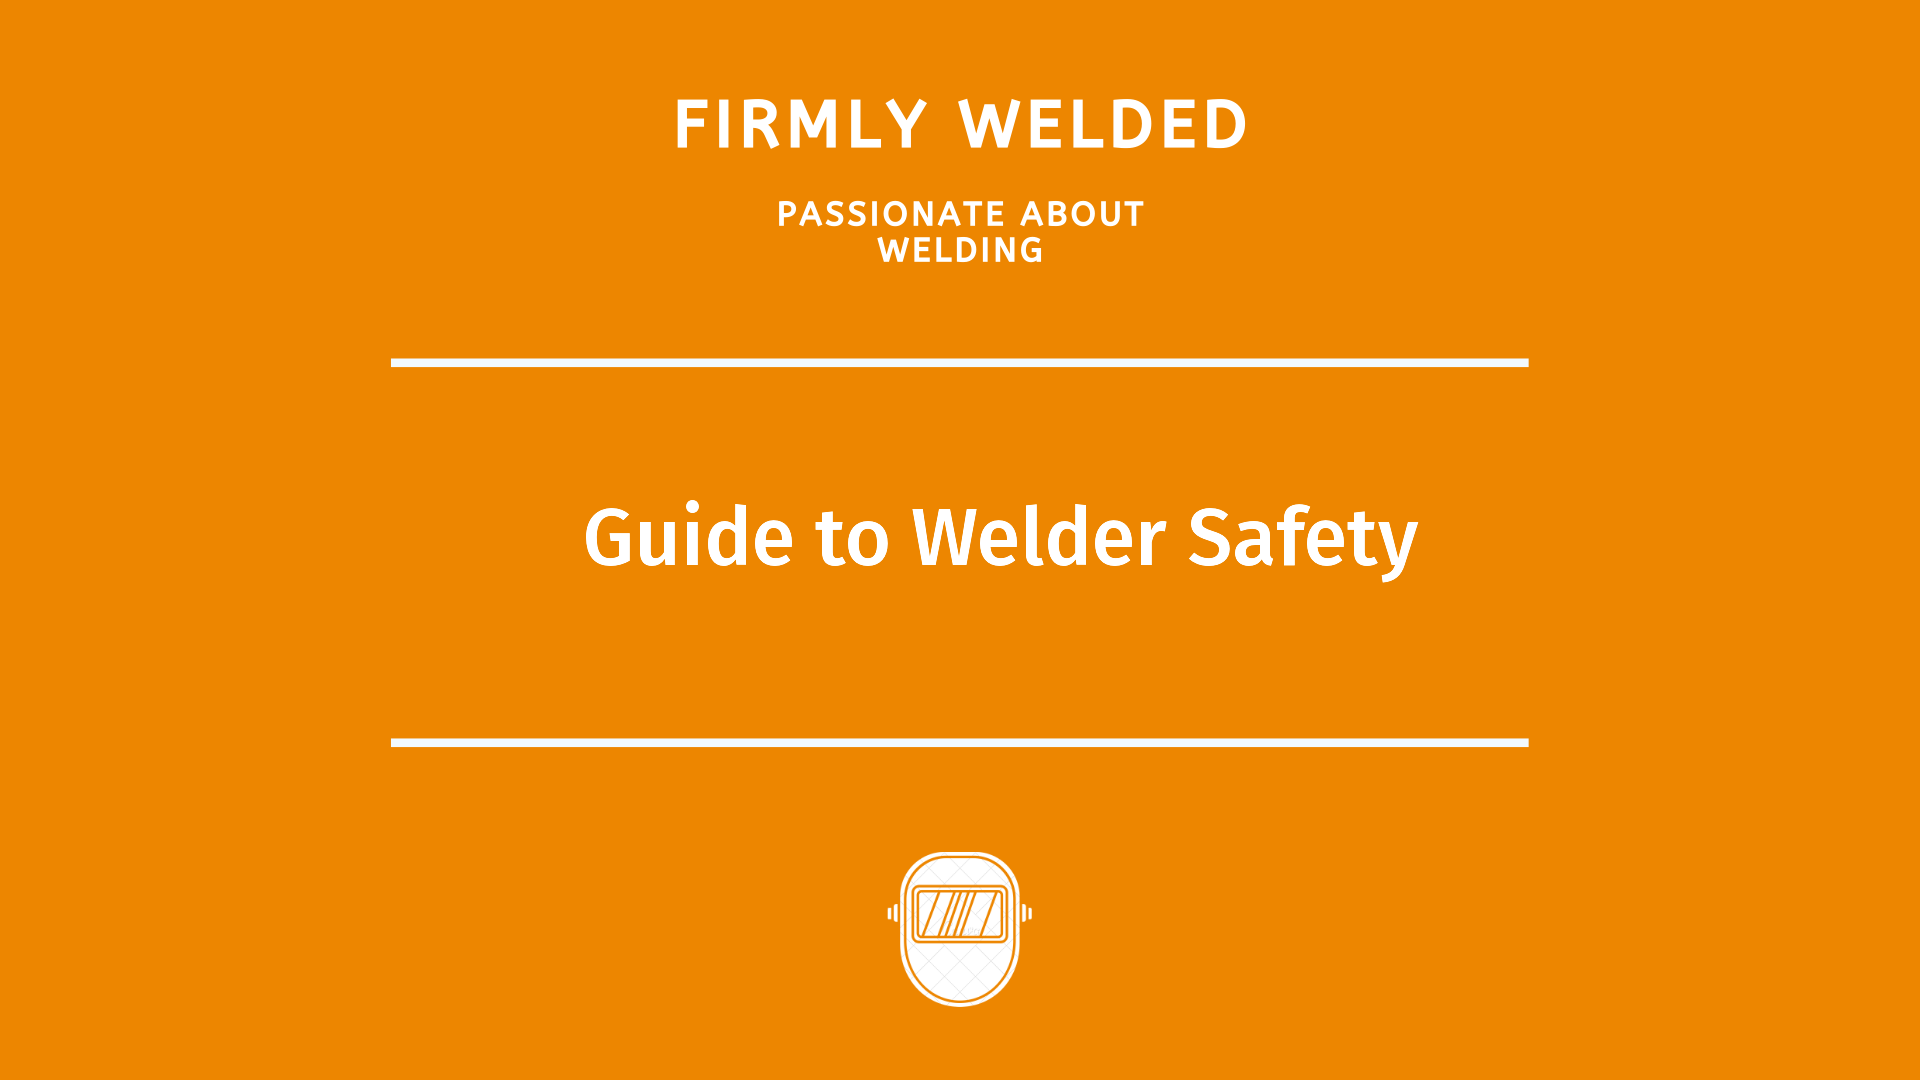 Guide to Welder Safety